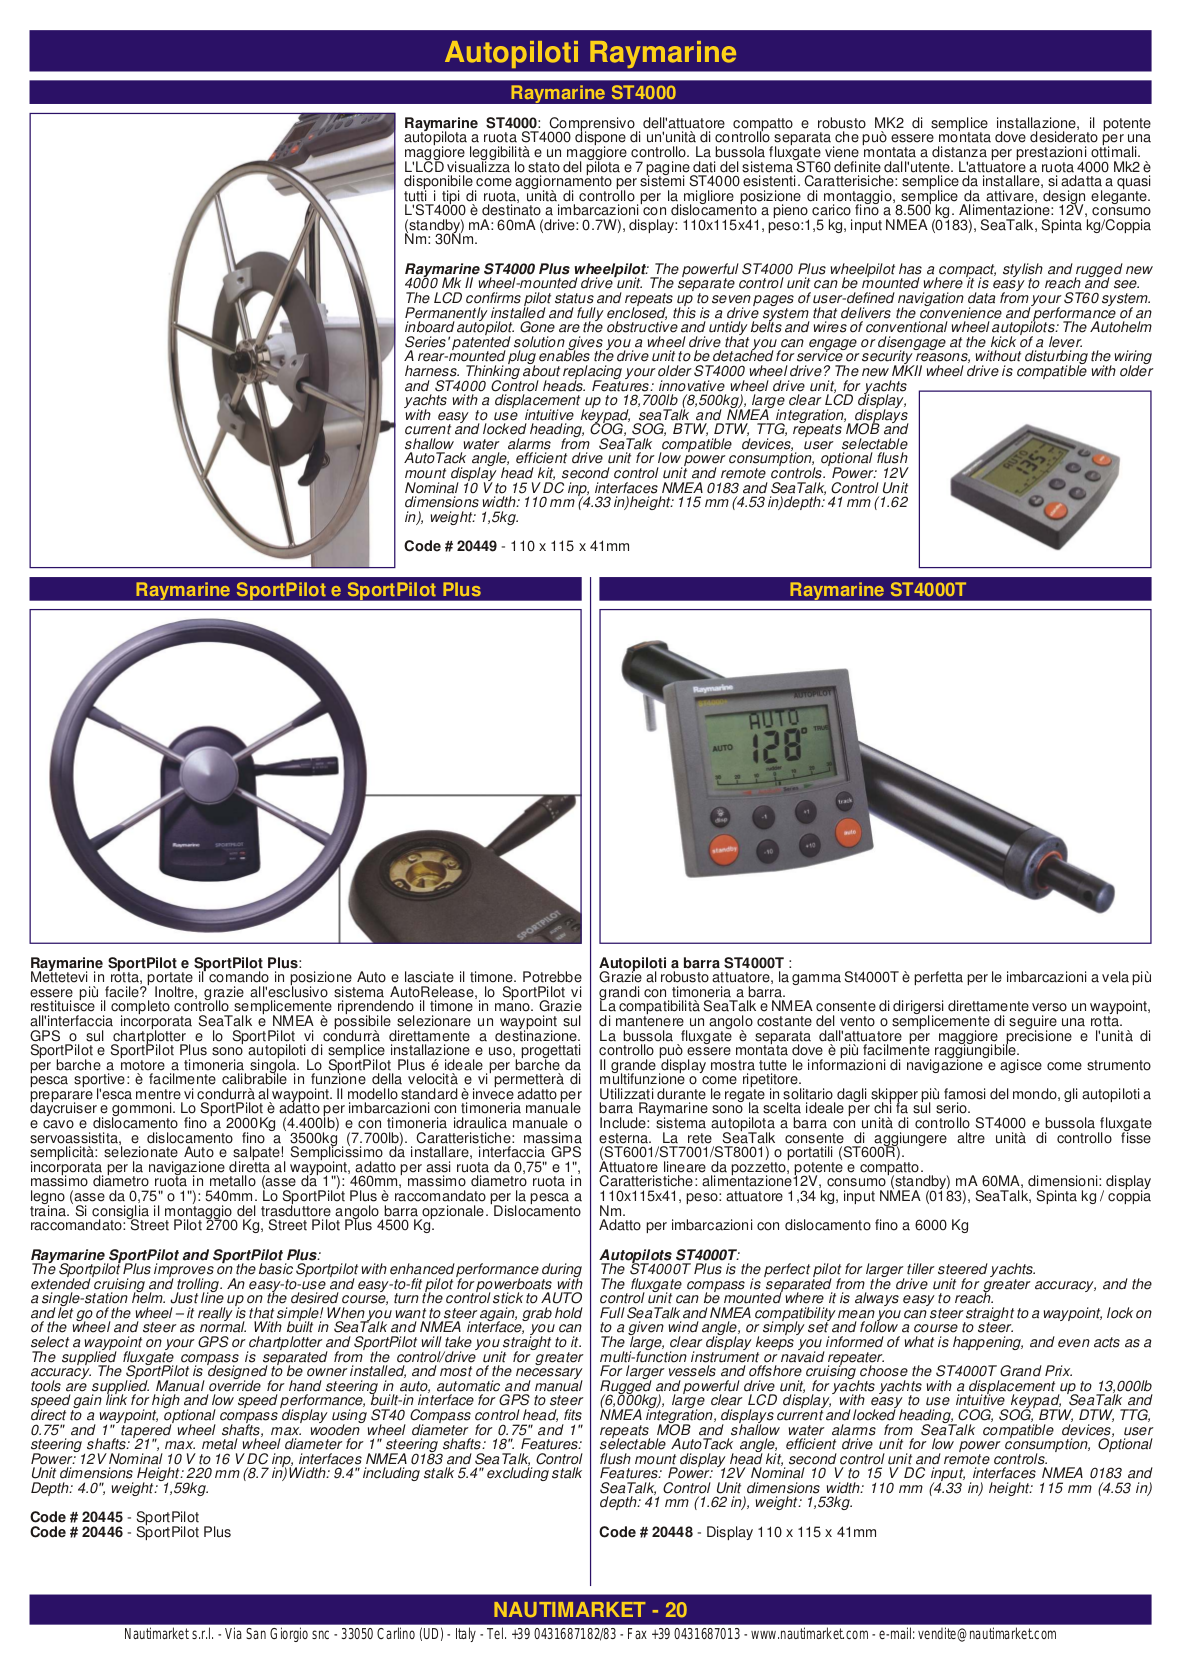 catalogo 2005 020.pdf 0 download free pdf for raymarine st4000 gps manual autohelm 4000 wiring diagram at gsmx.co